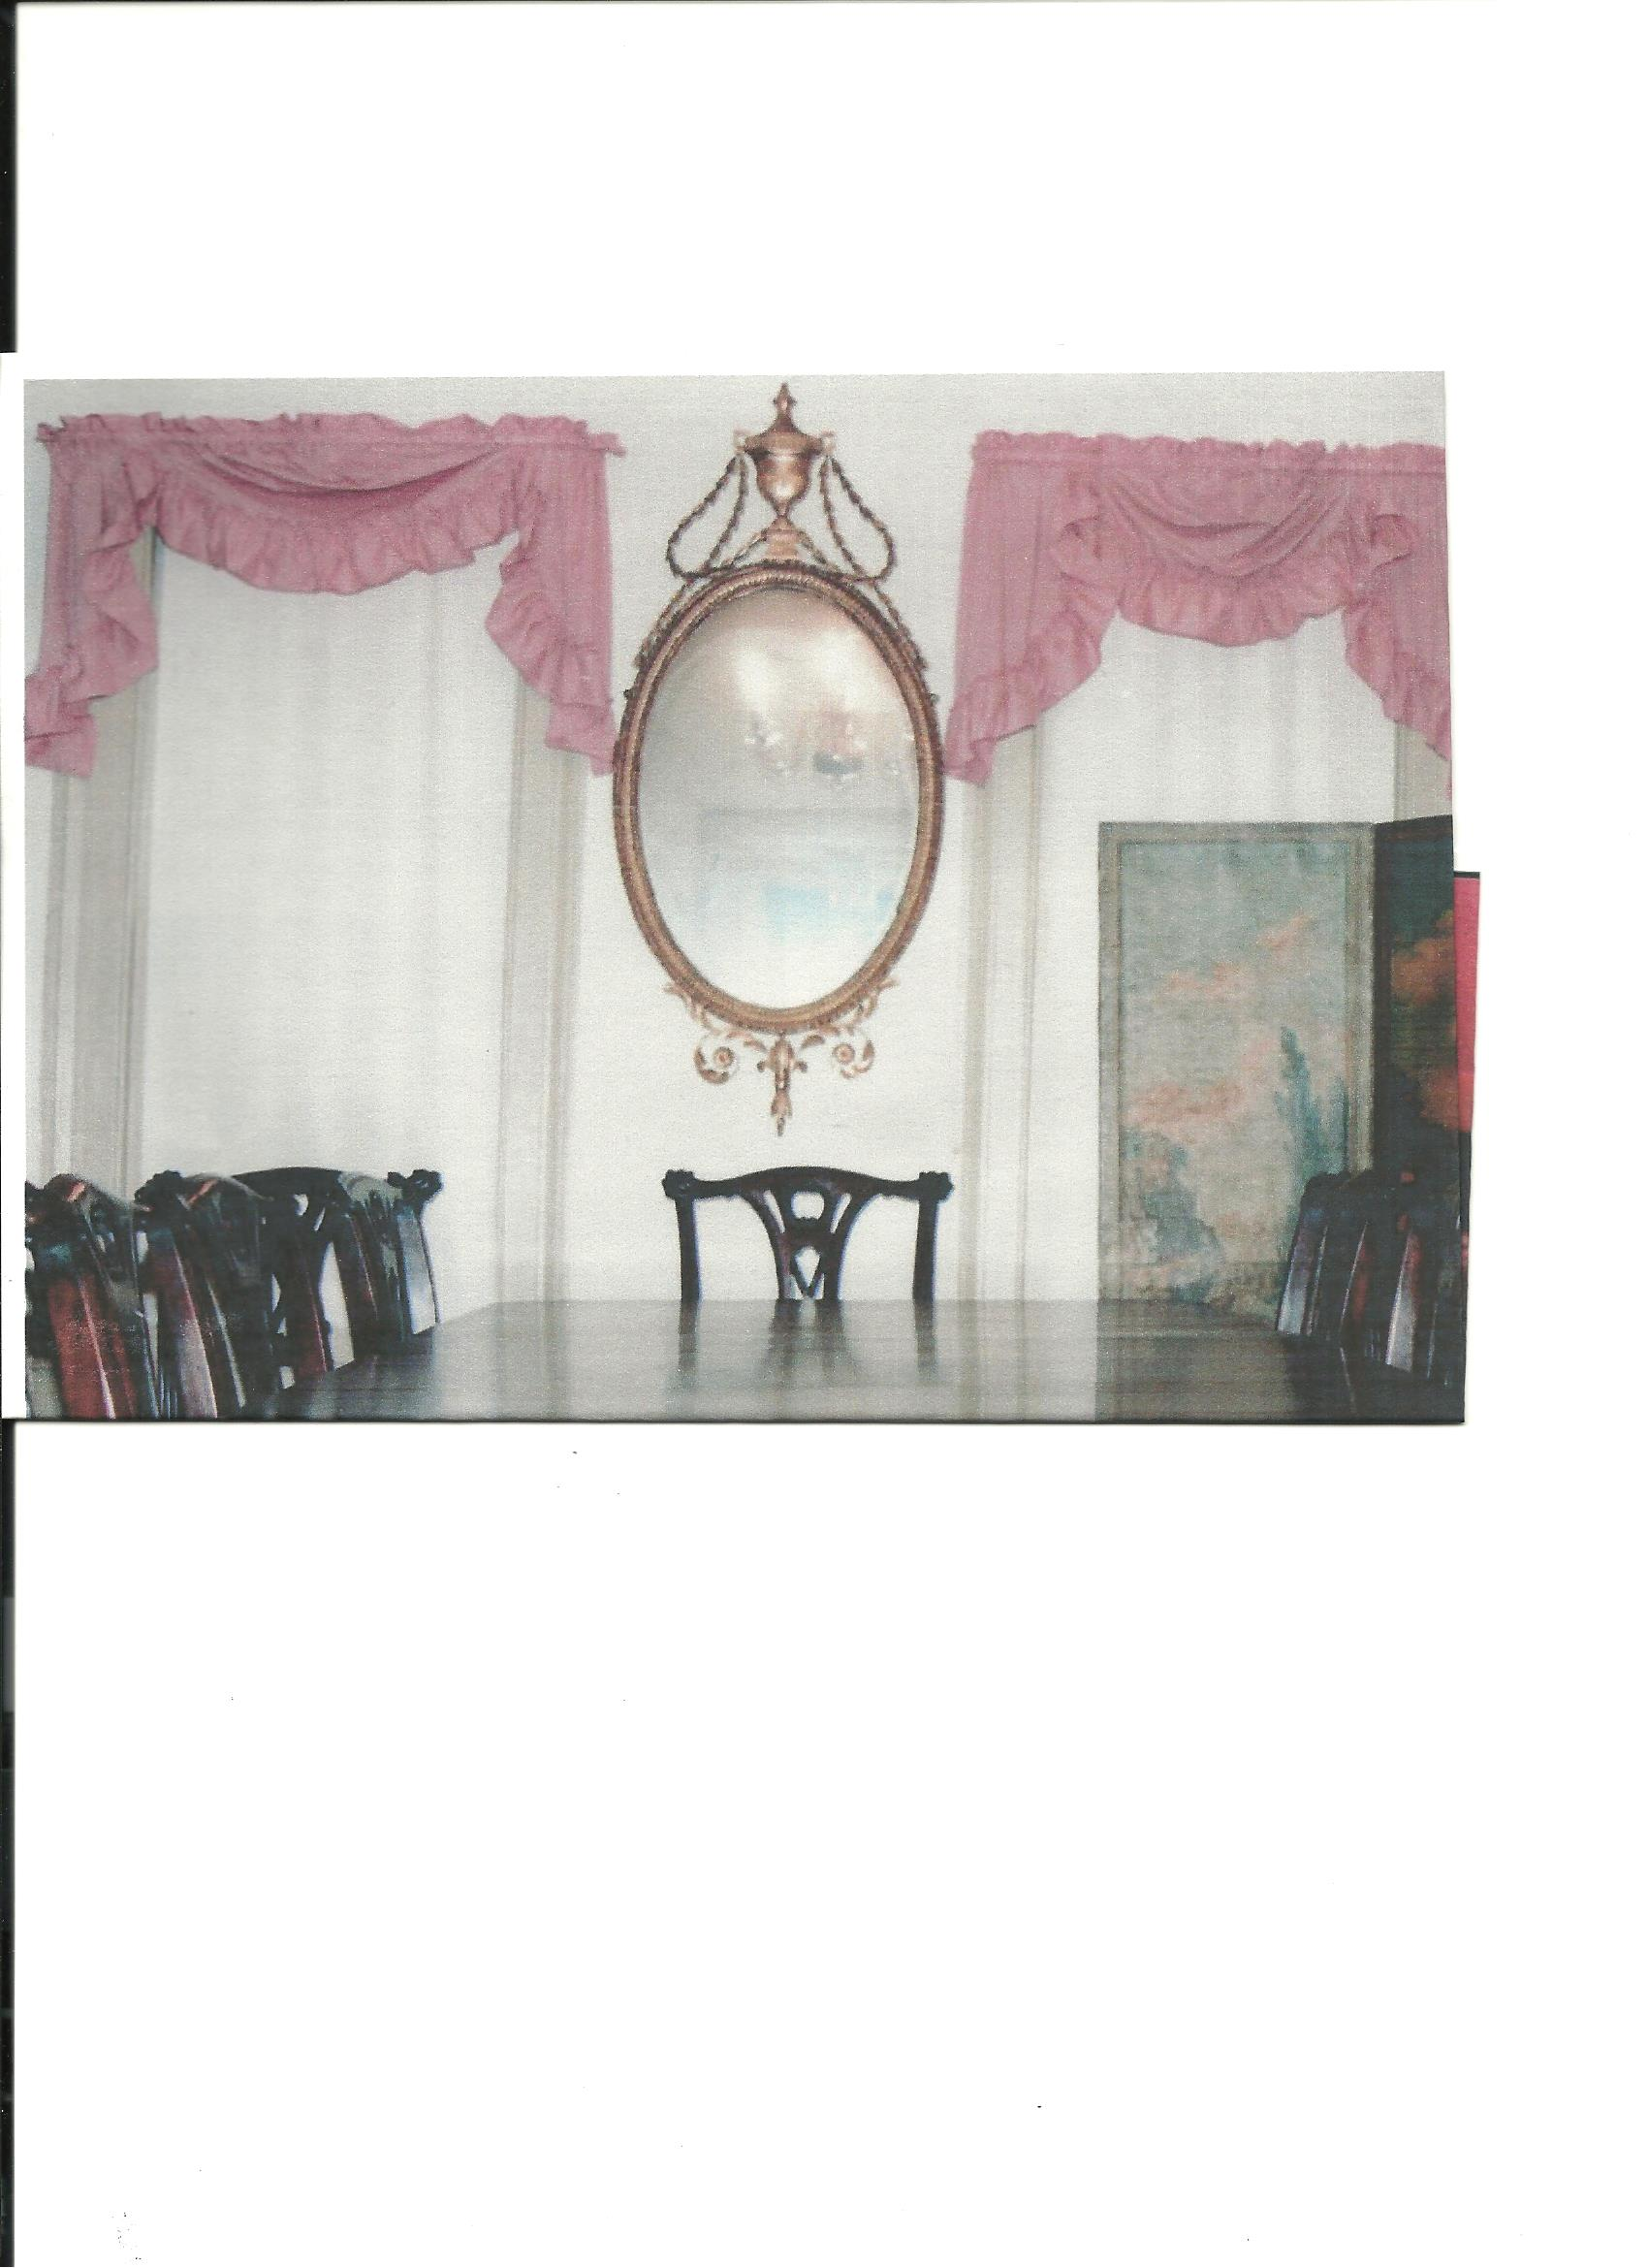 Adam style mirror for sale classifieds for Adam style mirror